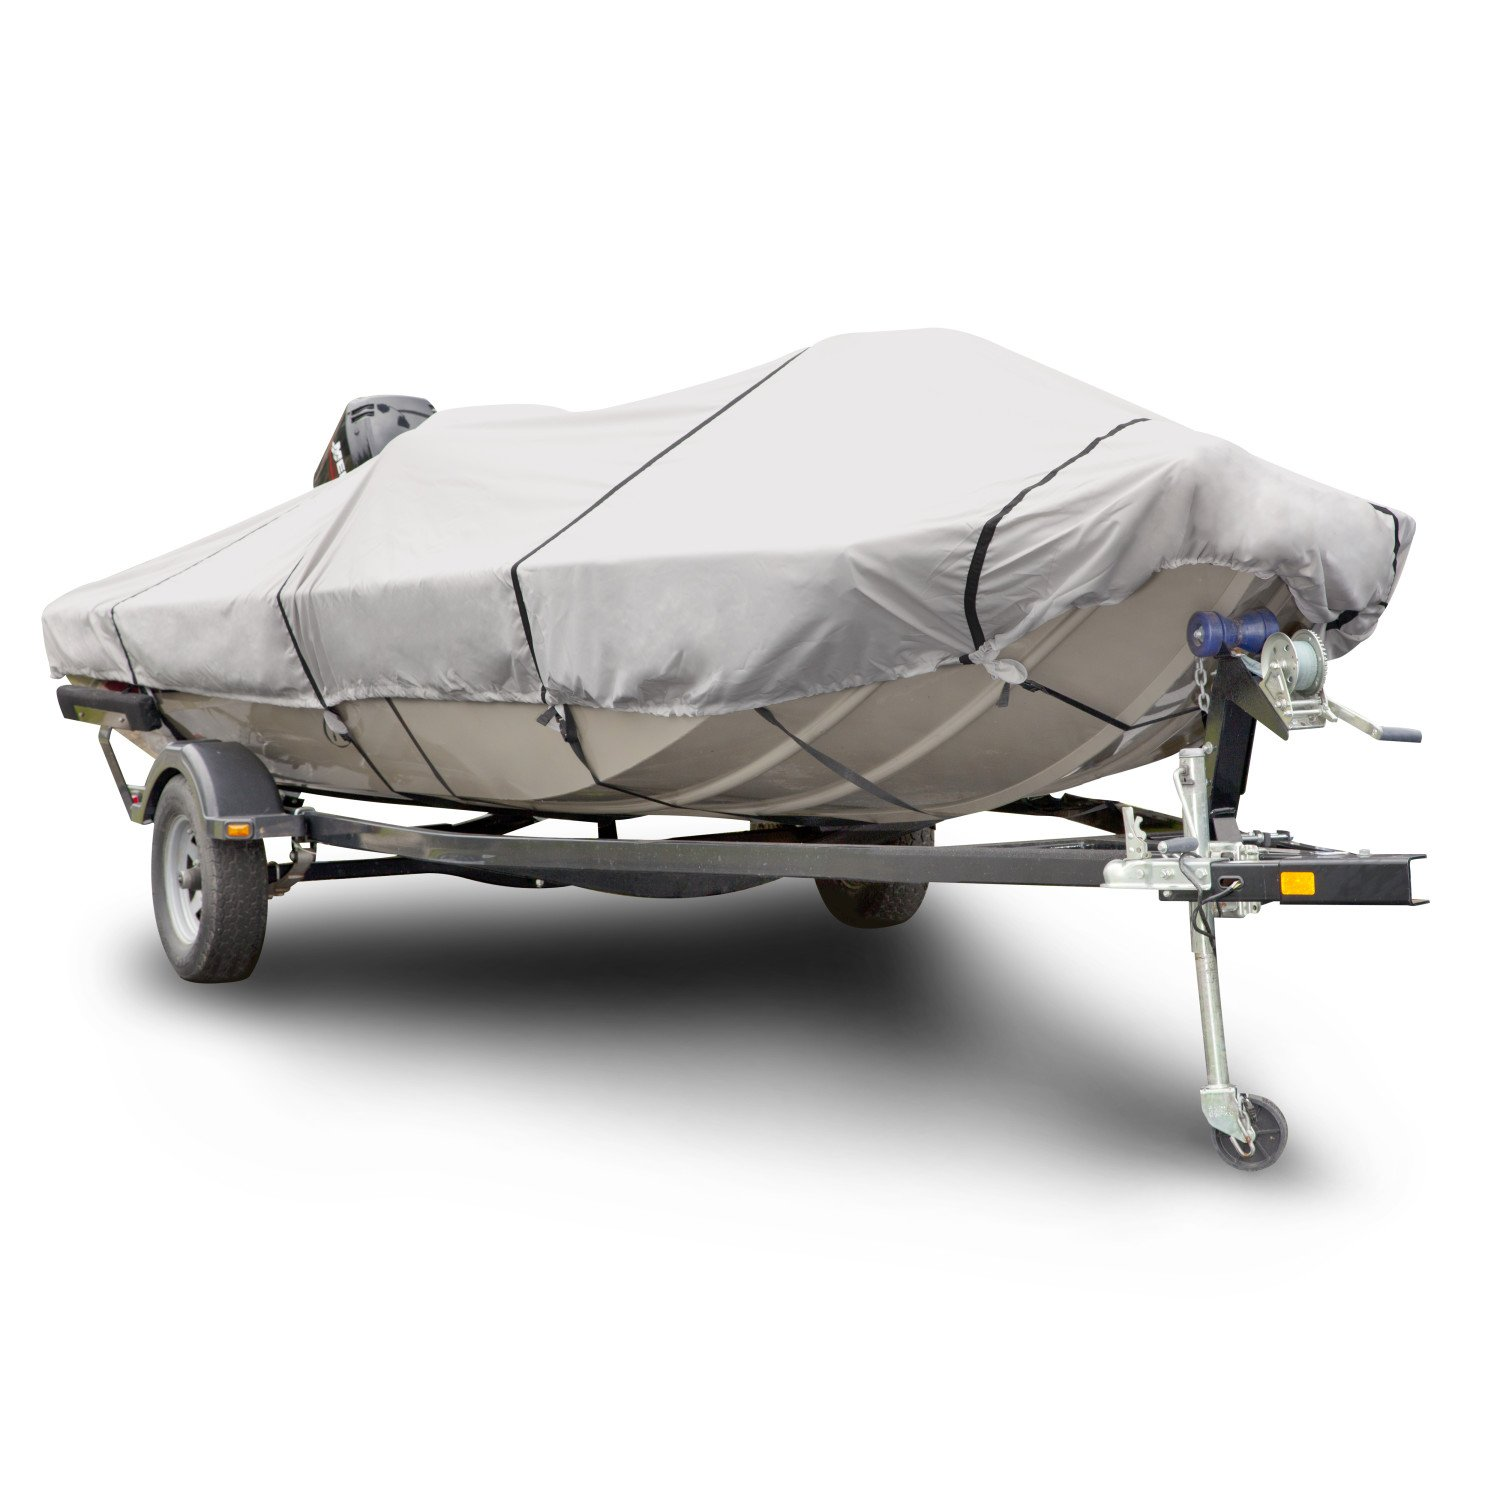 Budge 1200 Denier Boat Cover fits Low Profile Flat Front / Skiff / Deck Boats B-1211-X6 (20' - 22' Long, Gray)